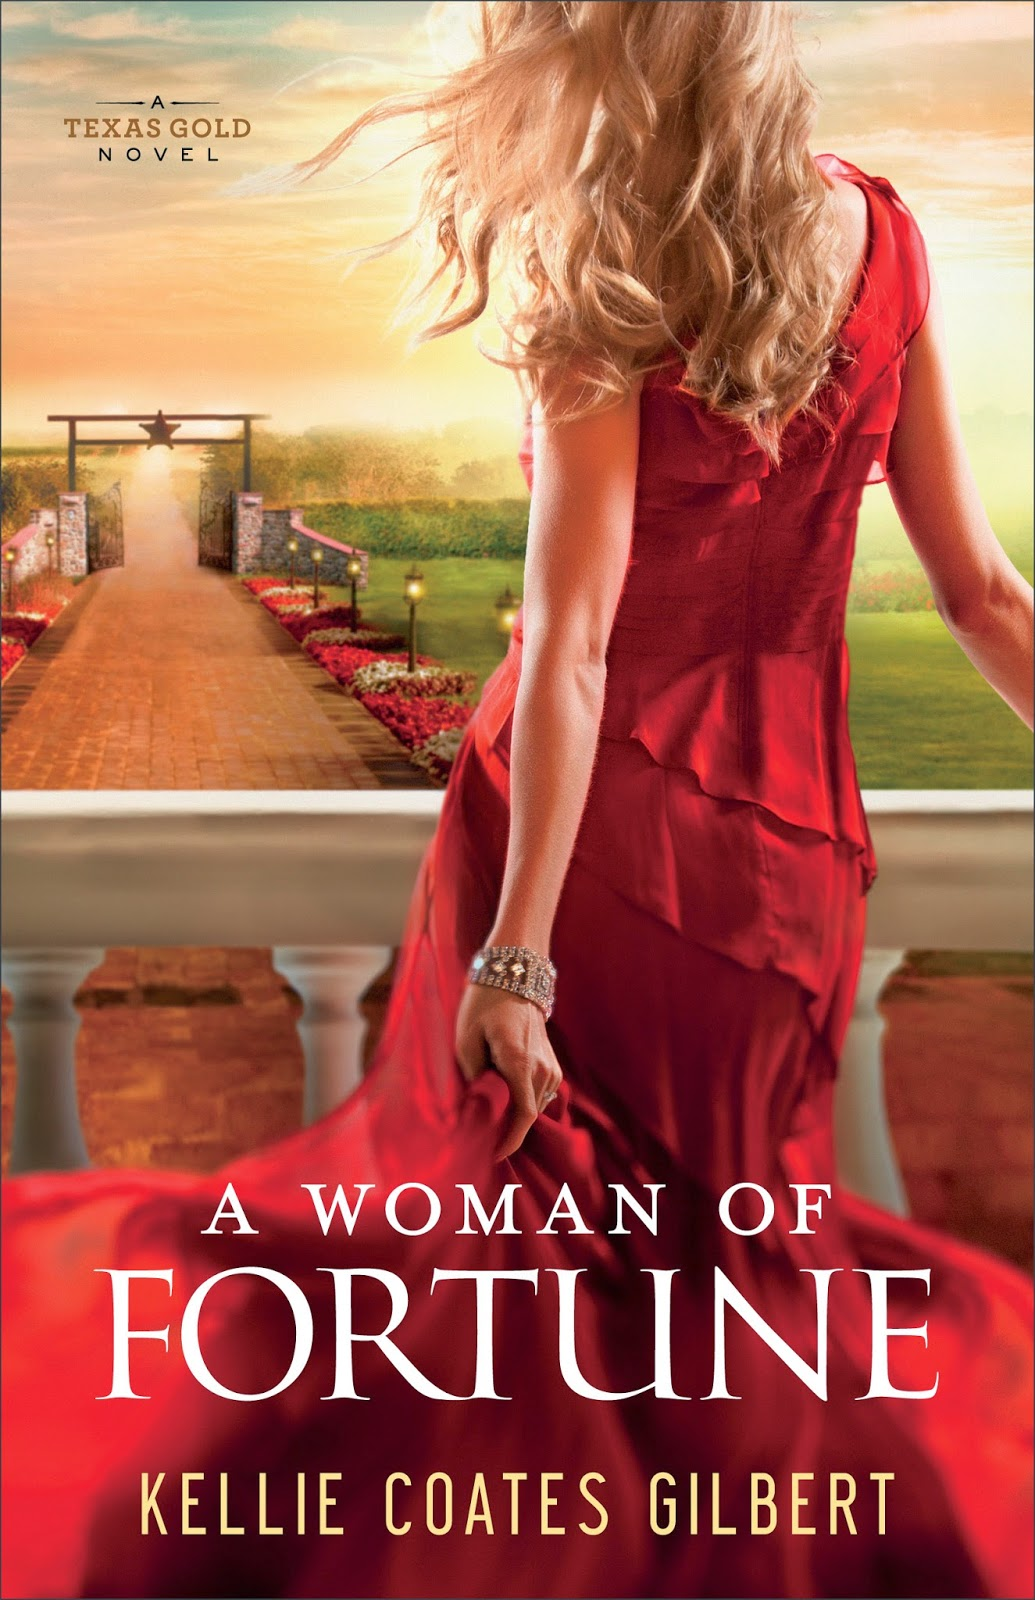 Woman-of-Fortune+book+cover.jpg